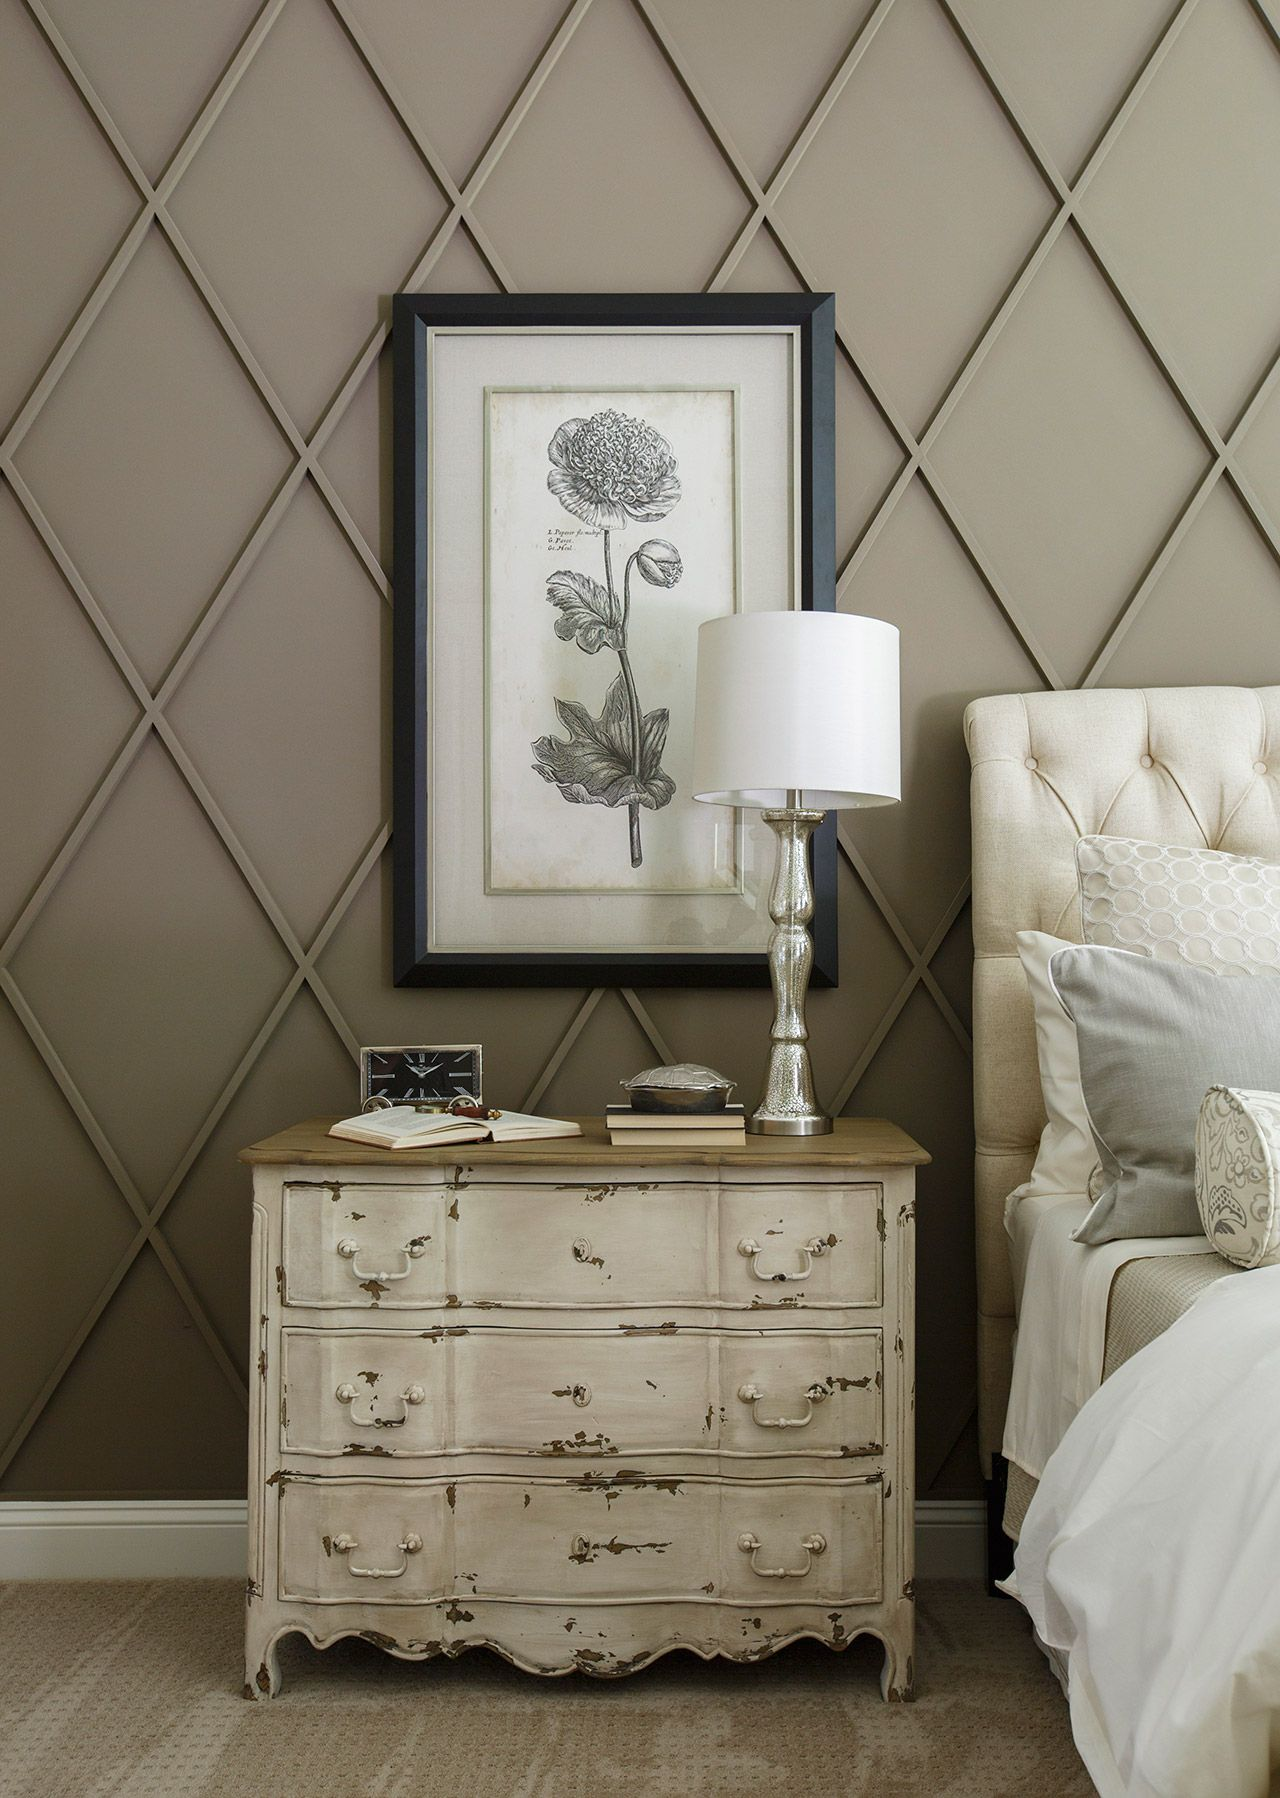 Back Accent Wall Great Use Of Raised Shapes To Add Texture And Dimension Using The Same Color For Both Kee Millwork Wall Farm House Living Room Bedroom Wall